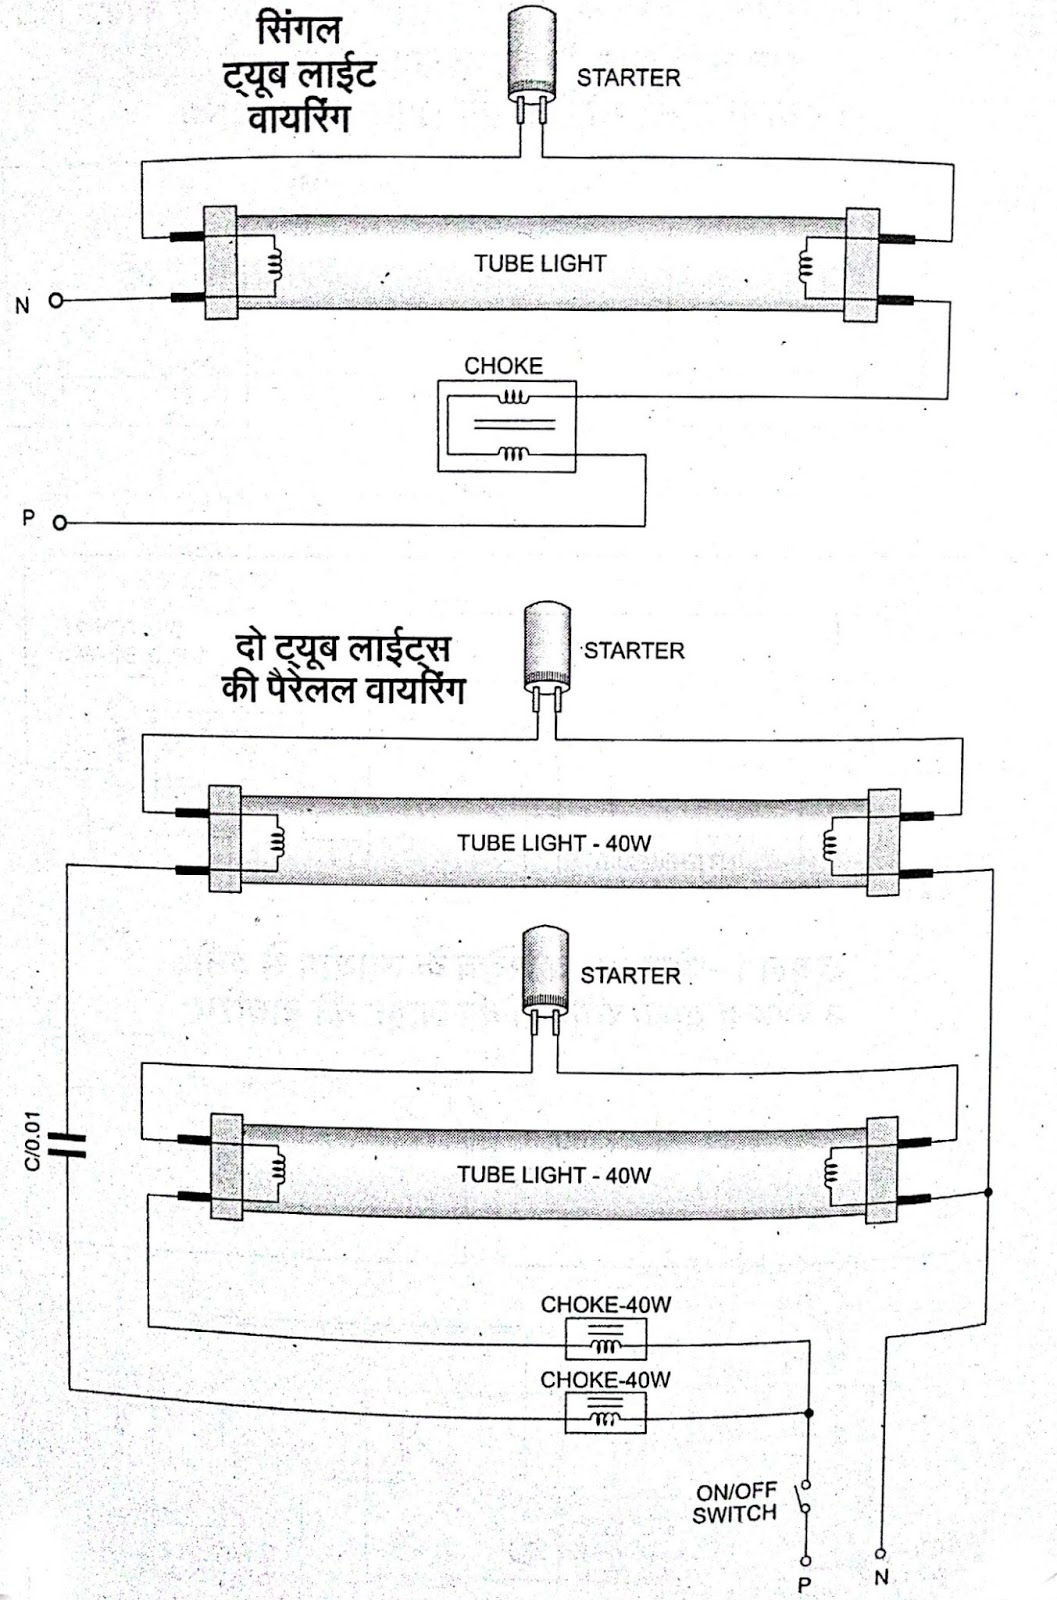 Connection diagram of 2 Tube lights with single choke